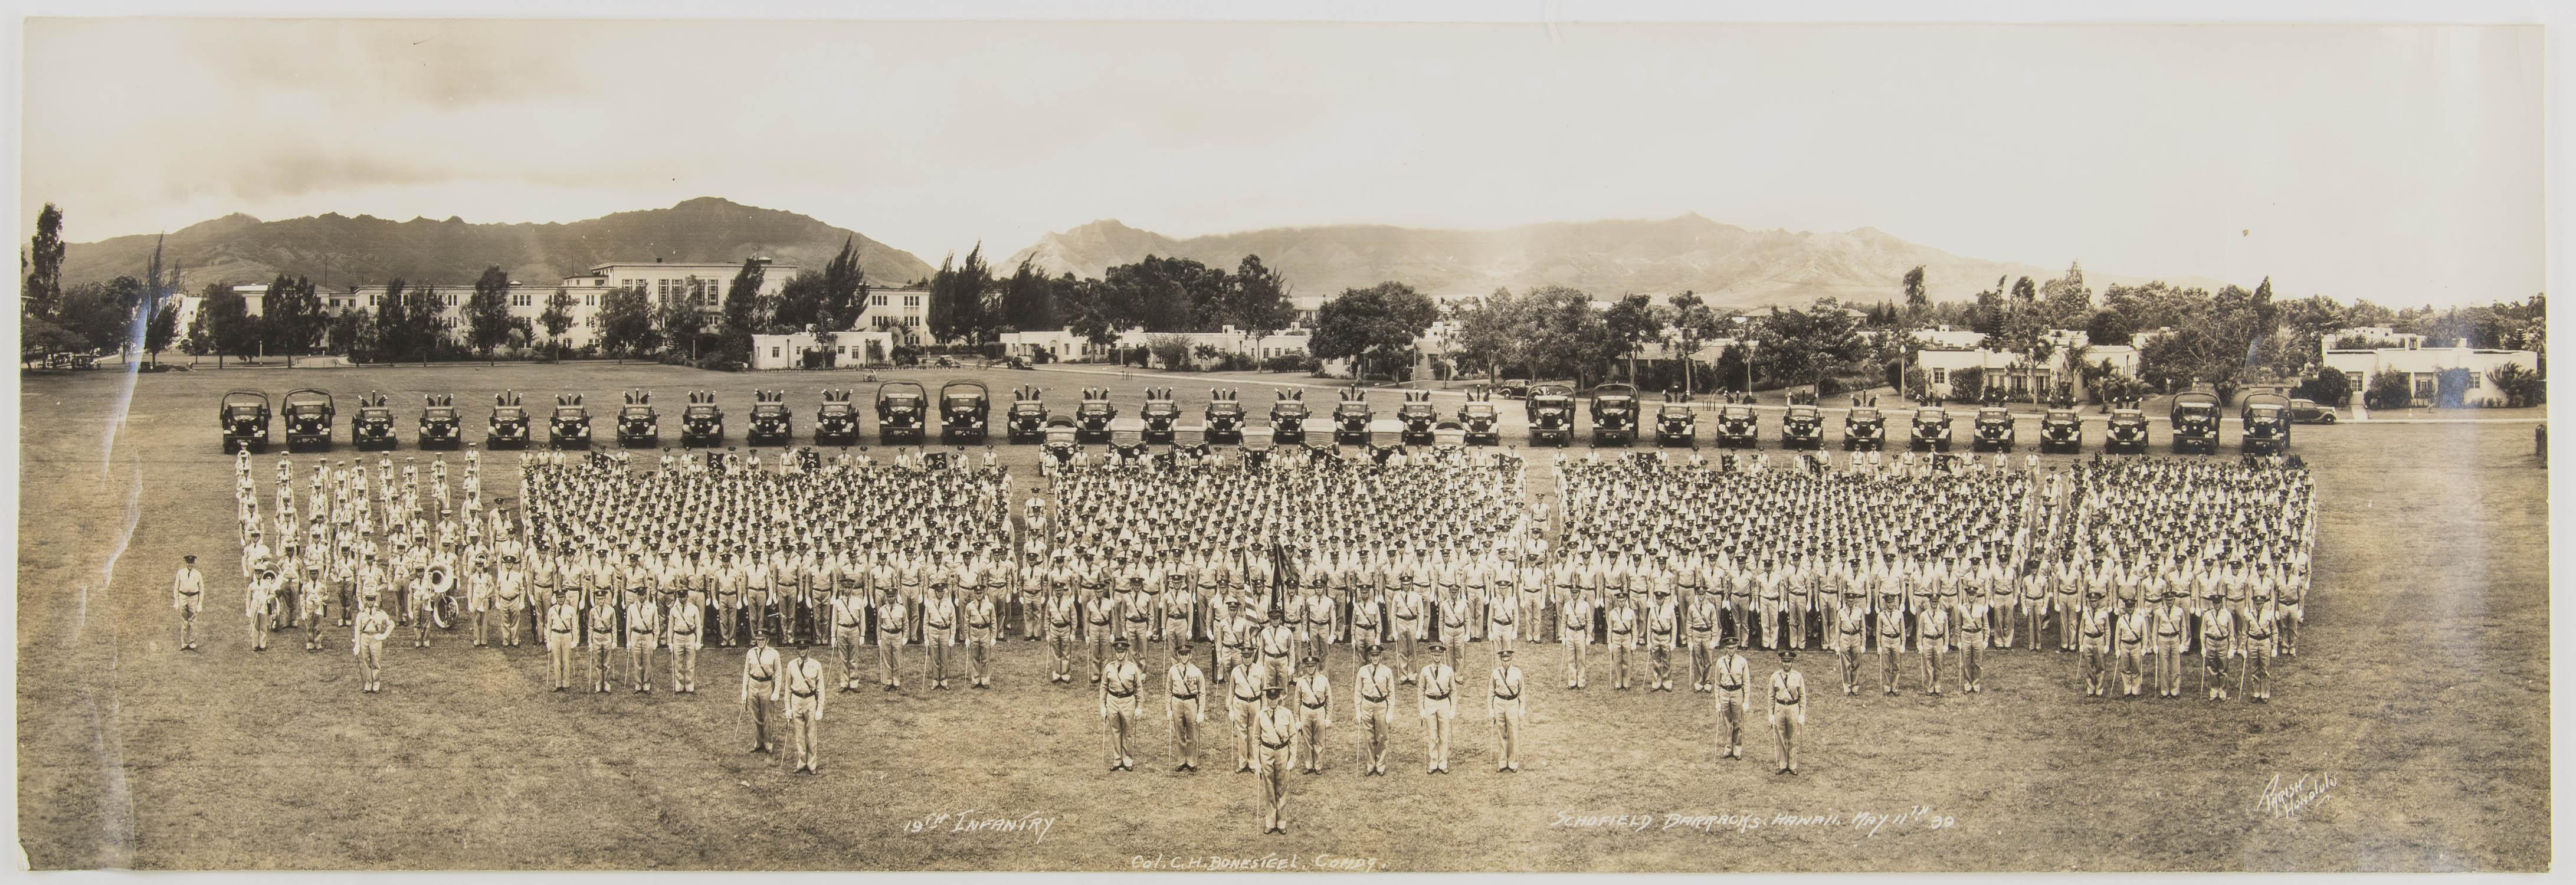 GEN. CLARENCE R. HUEBNER'S PHOTOGRAPH OF 19TH INFANTRY AT SCHOFIELD BARRACKS, CA. 1939